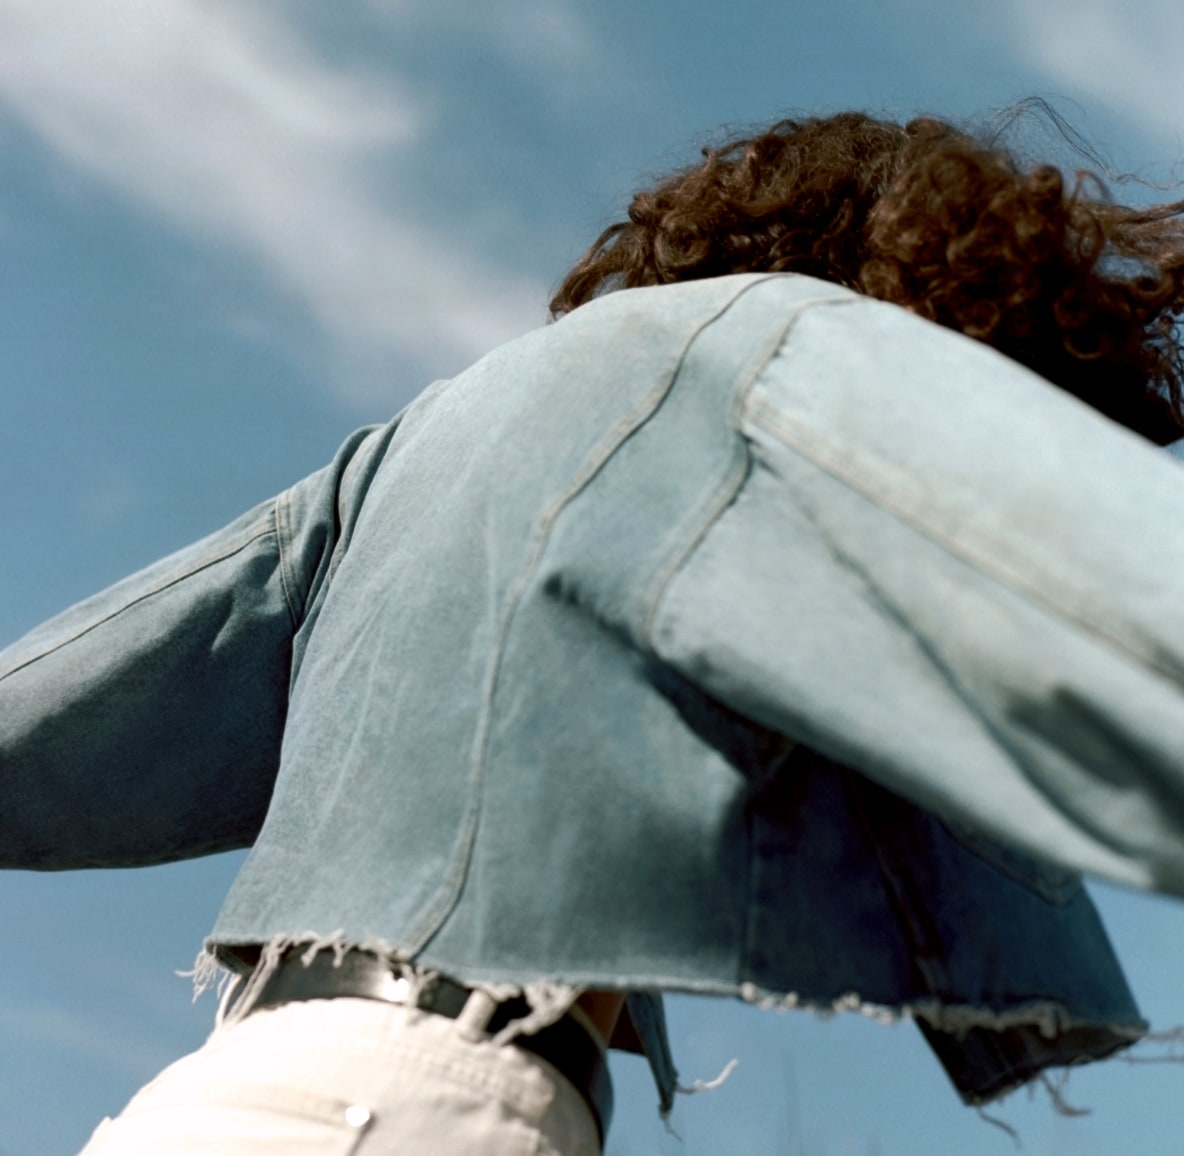 Woman with curly hair facing away from the camera wearing denim jacket and white pants